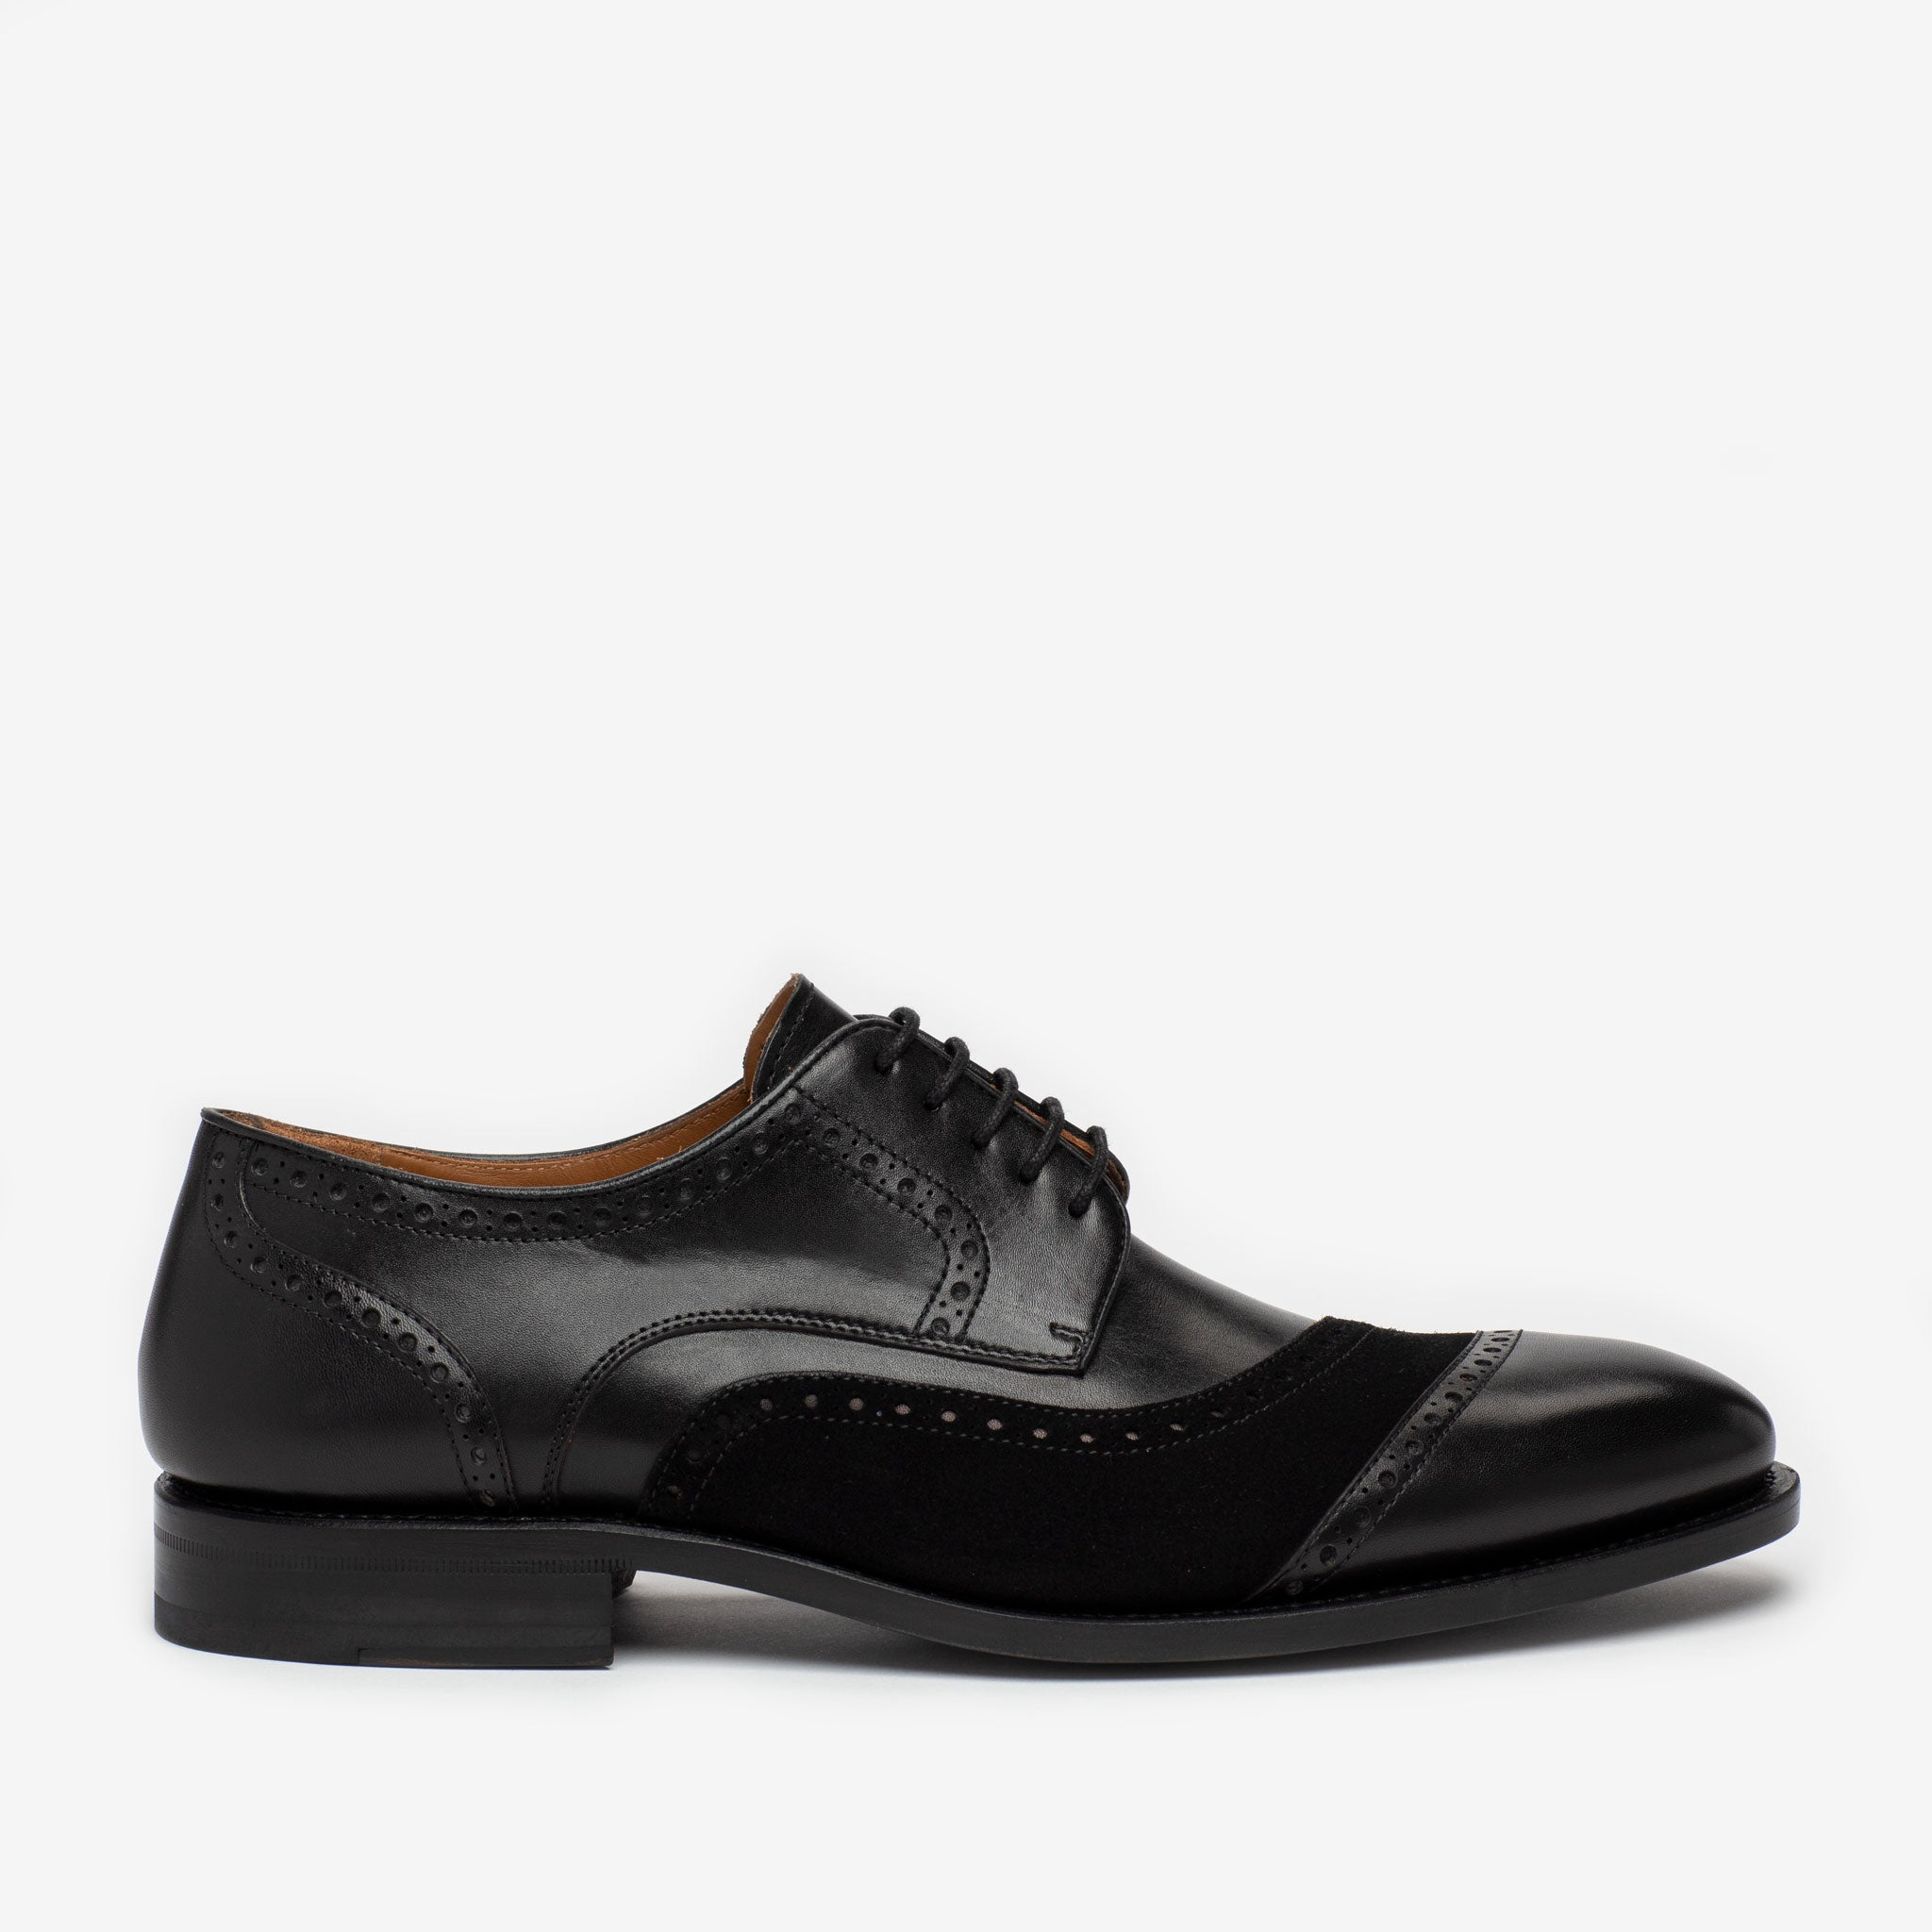 The Gladiator Shoe in Black